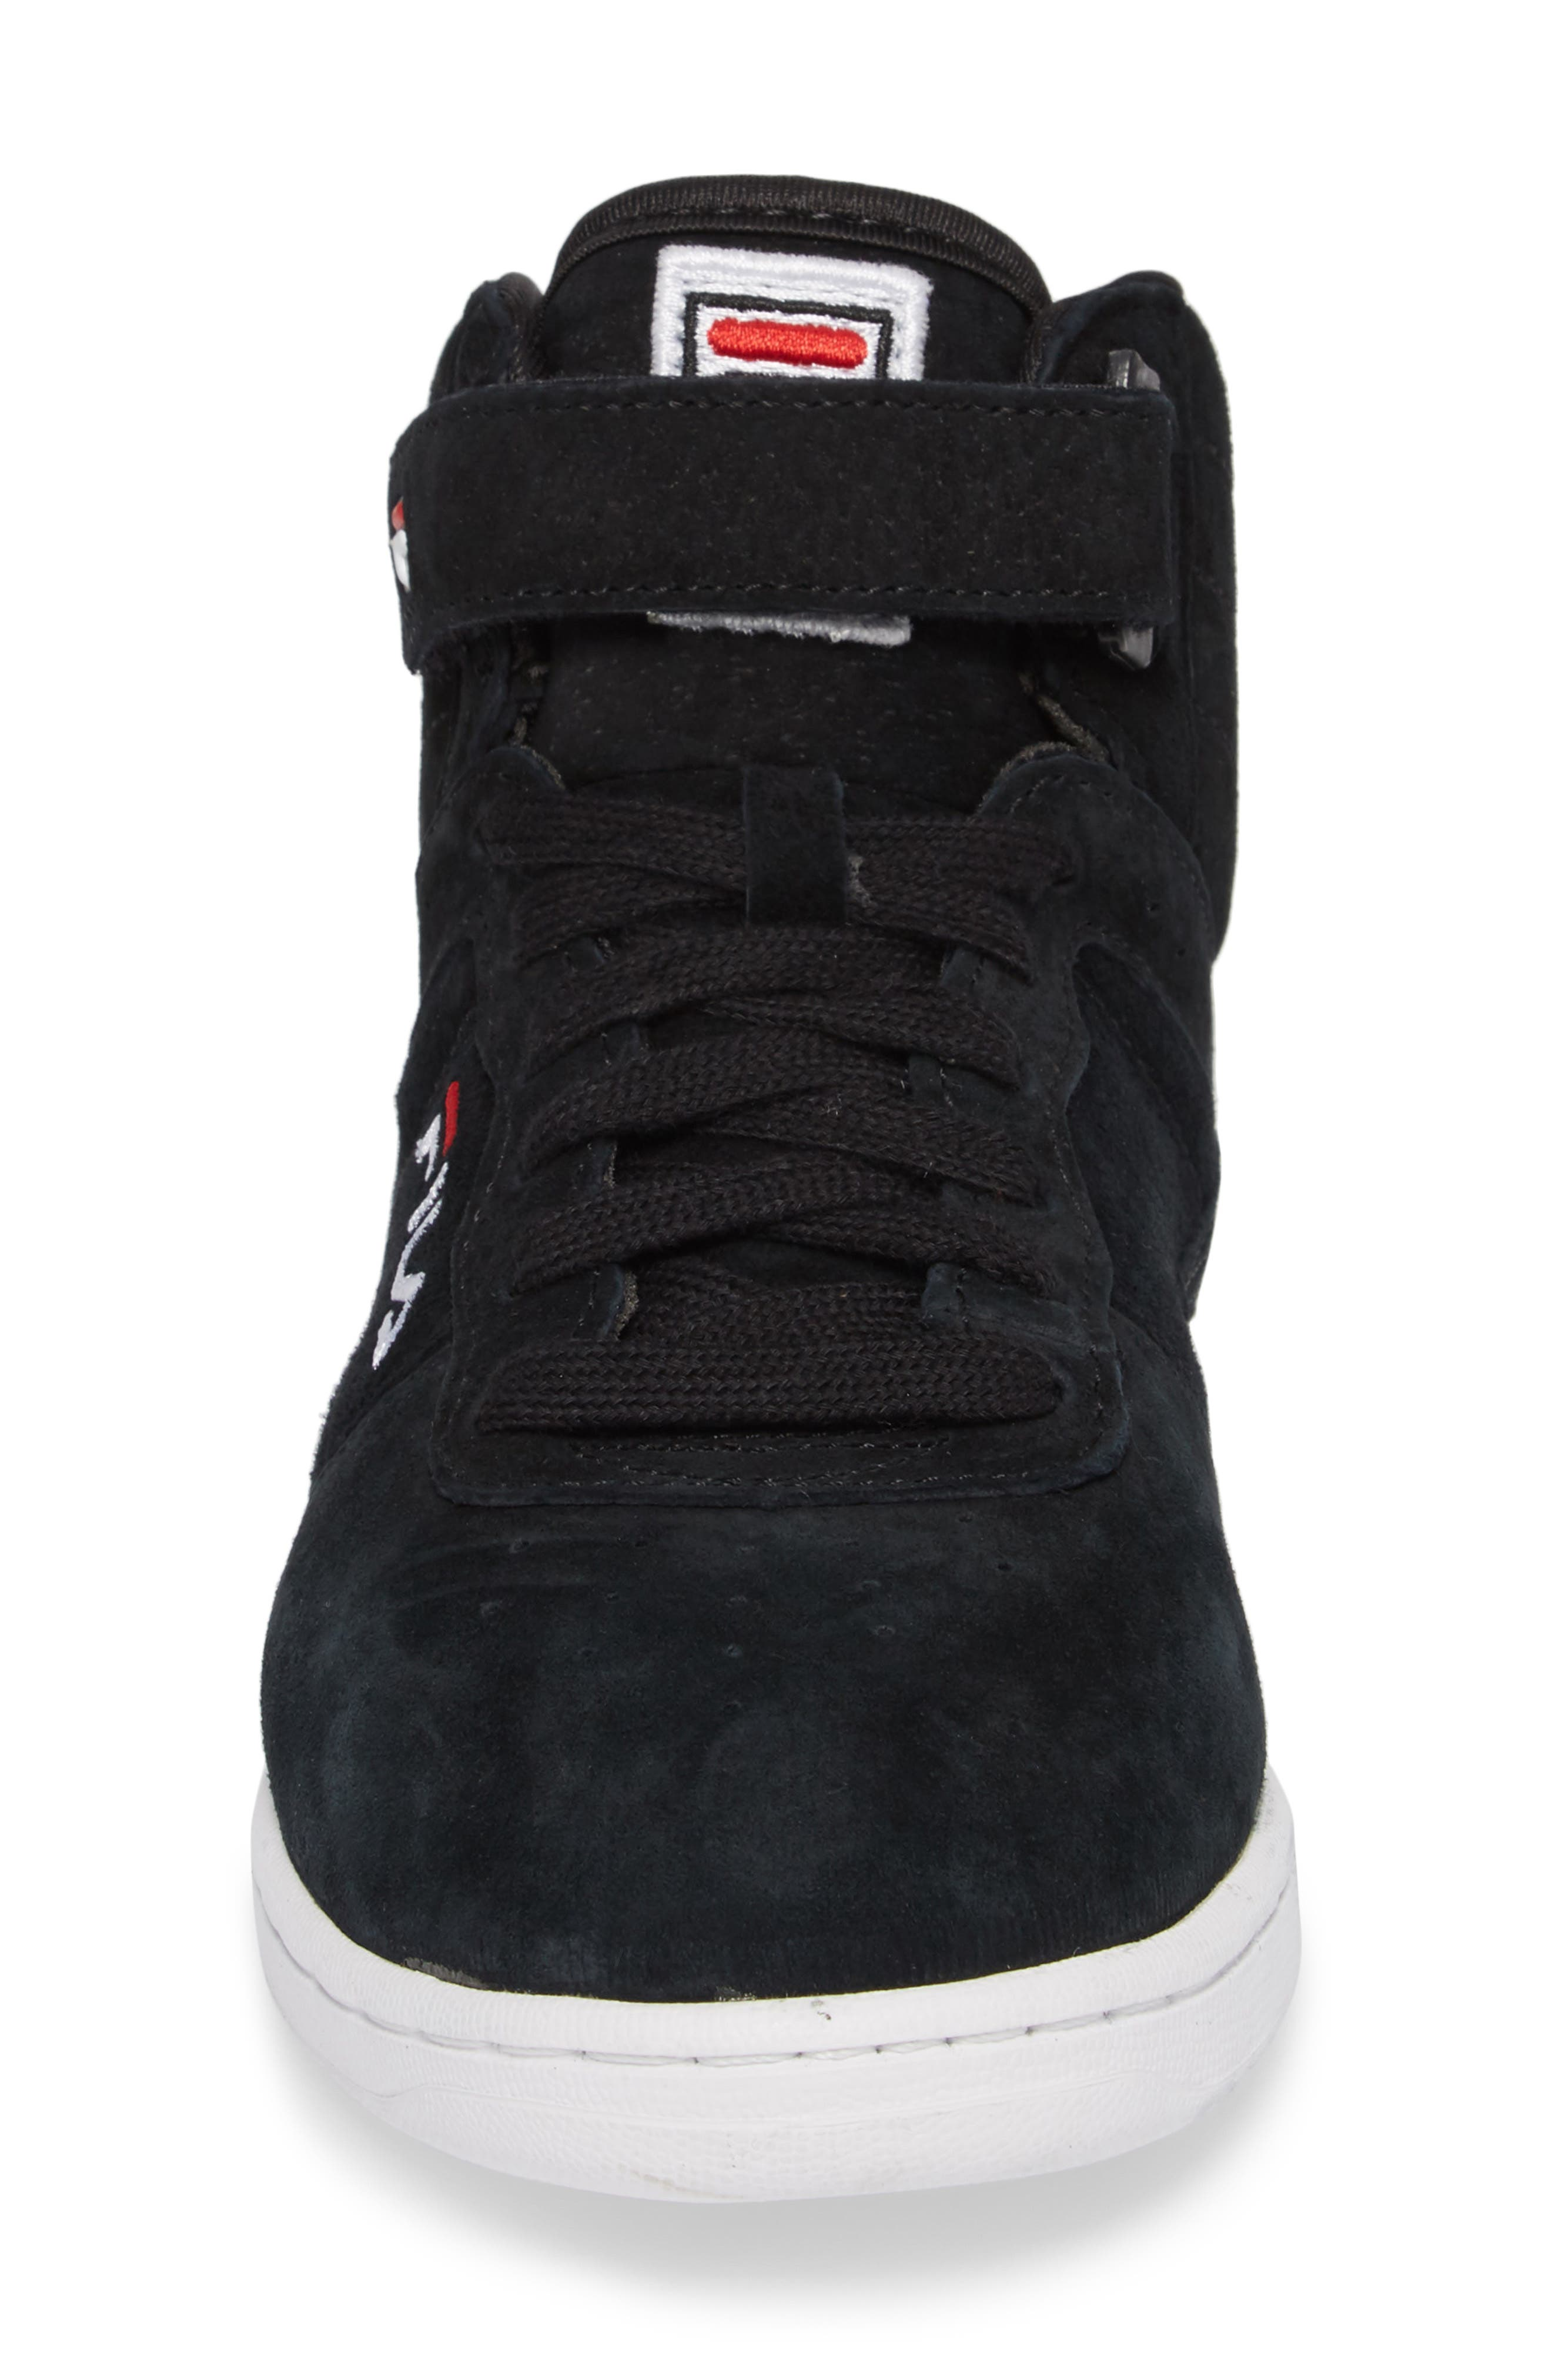 F-13 Premium Mid Top Sneaker,                             Alternate thumbnail 4, color,                             001